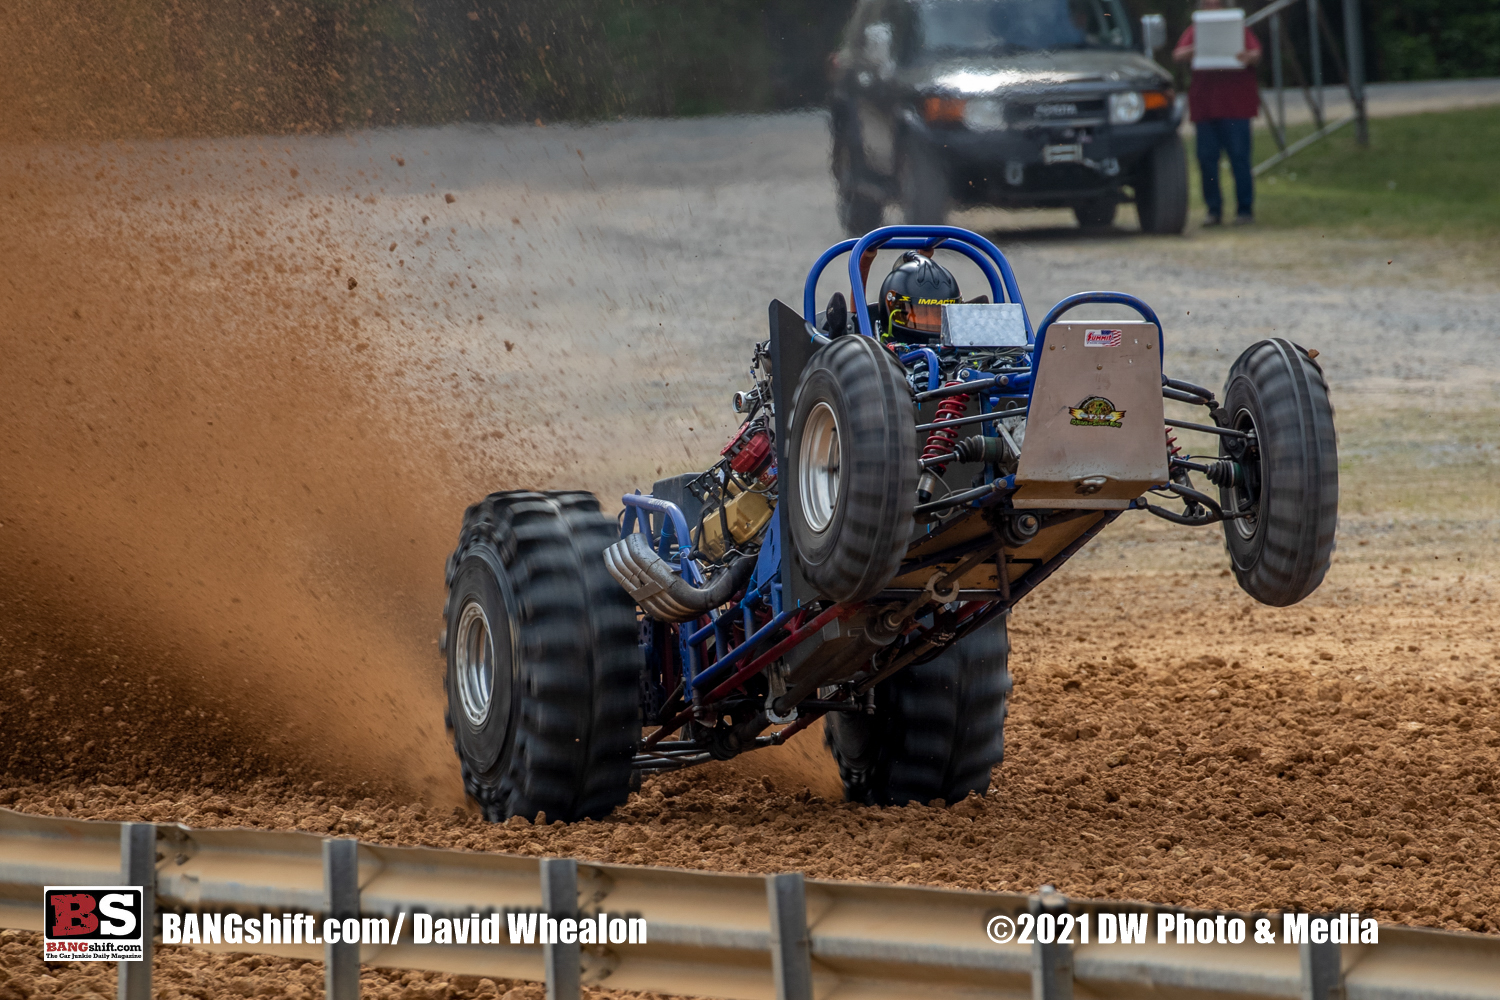 Romping Through The Swamp: Awesome Mud Bog Action From The Lee County Mud Motorsports Park